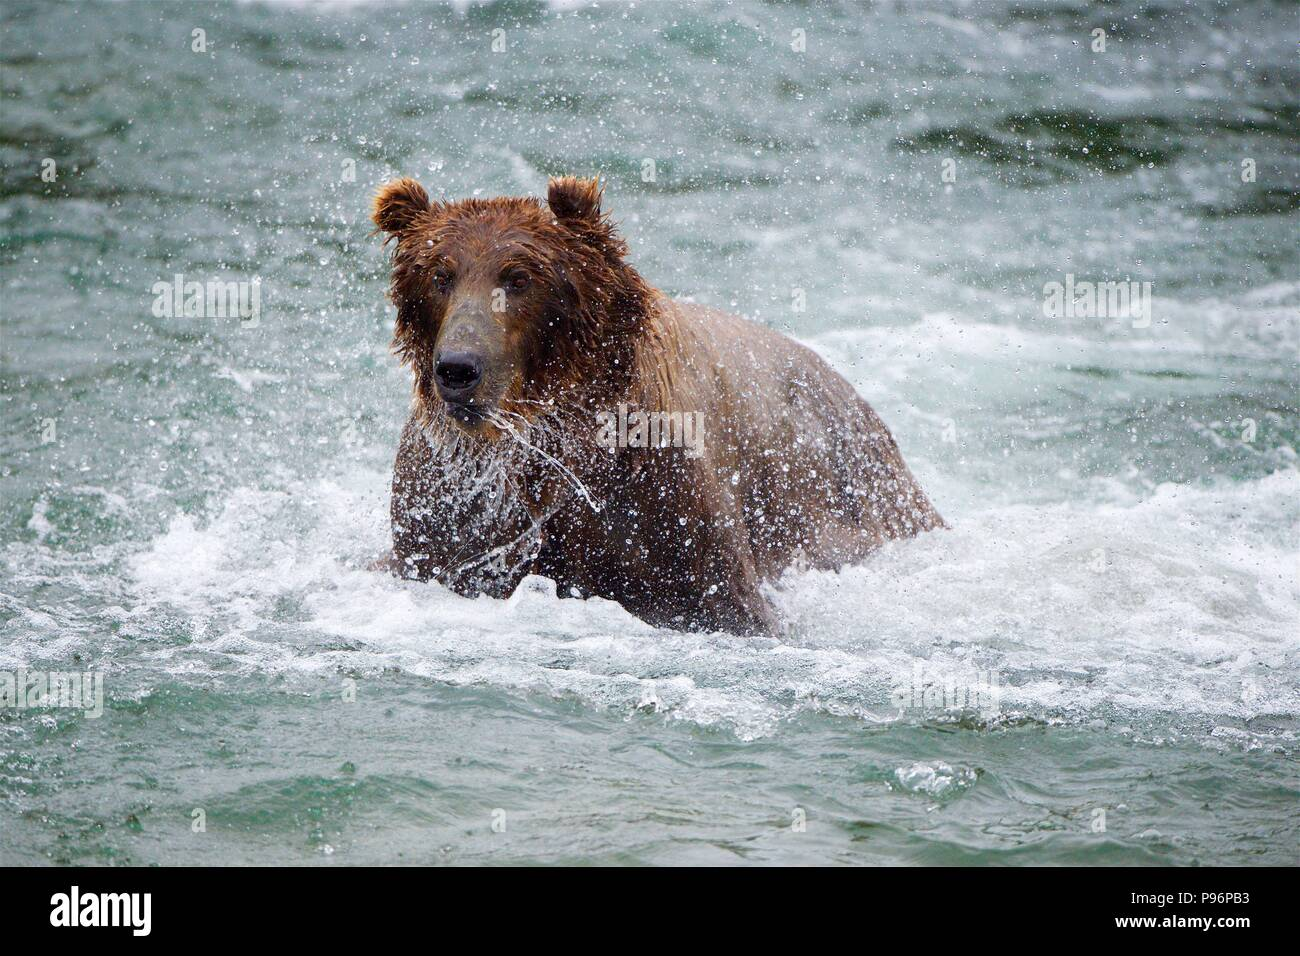 Grizzly bear catching salmon in Brooks Falls, Katmai, Alaska - Stock Image